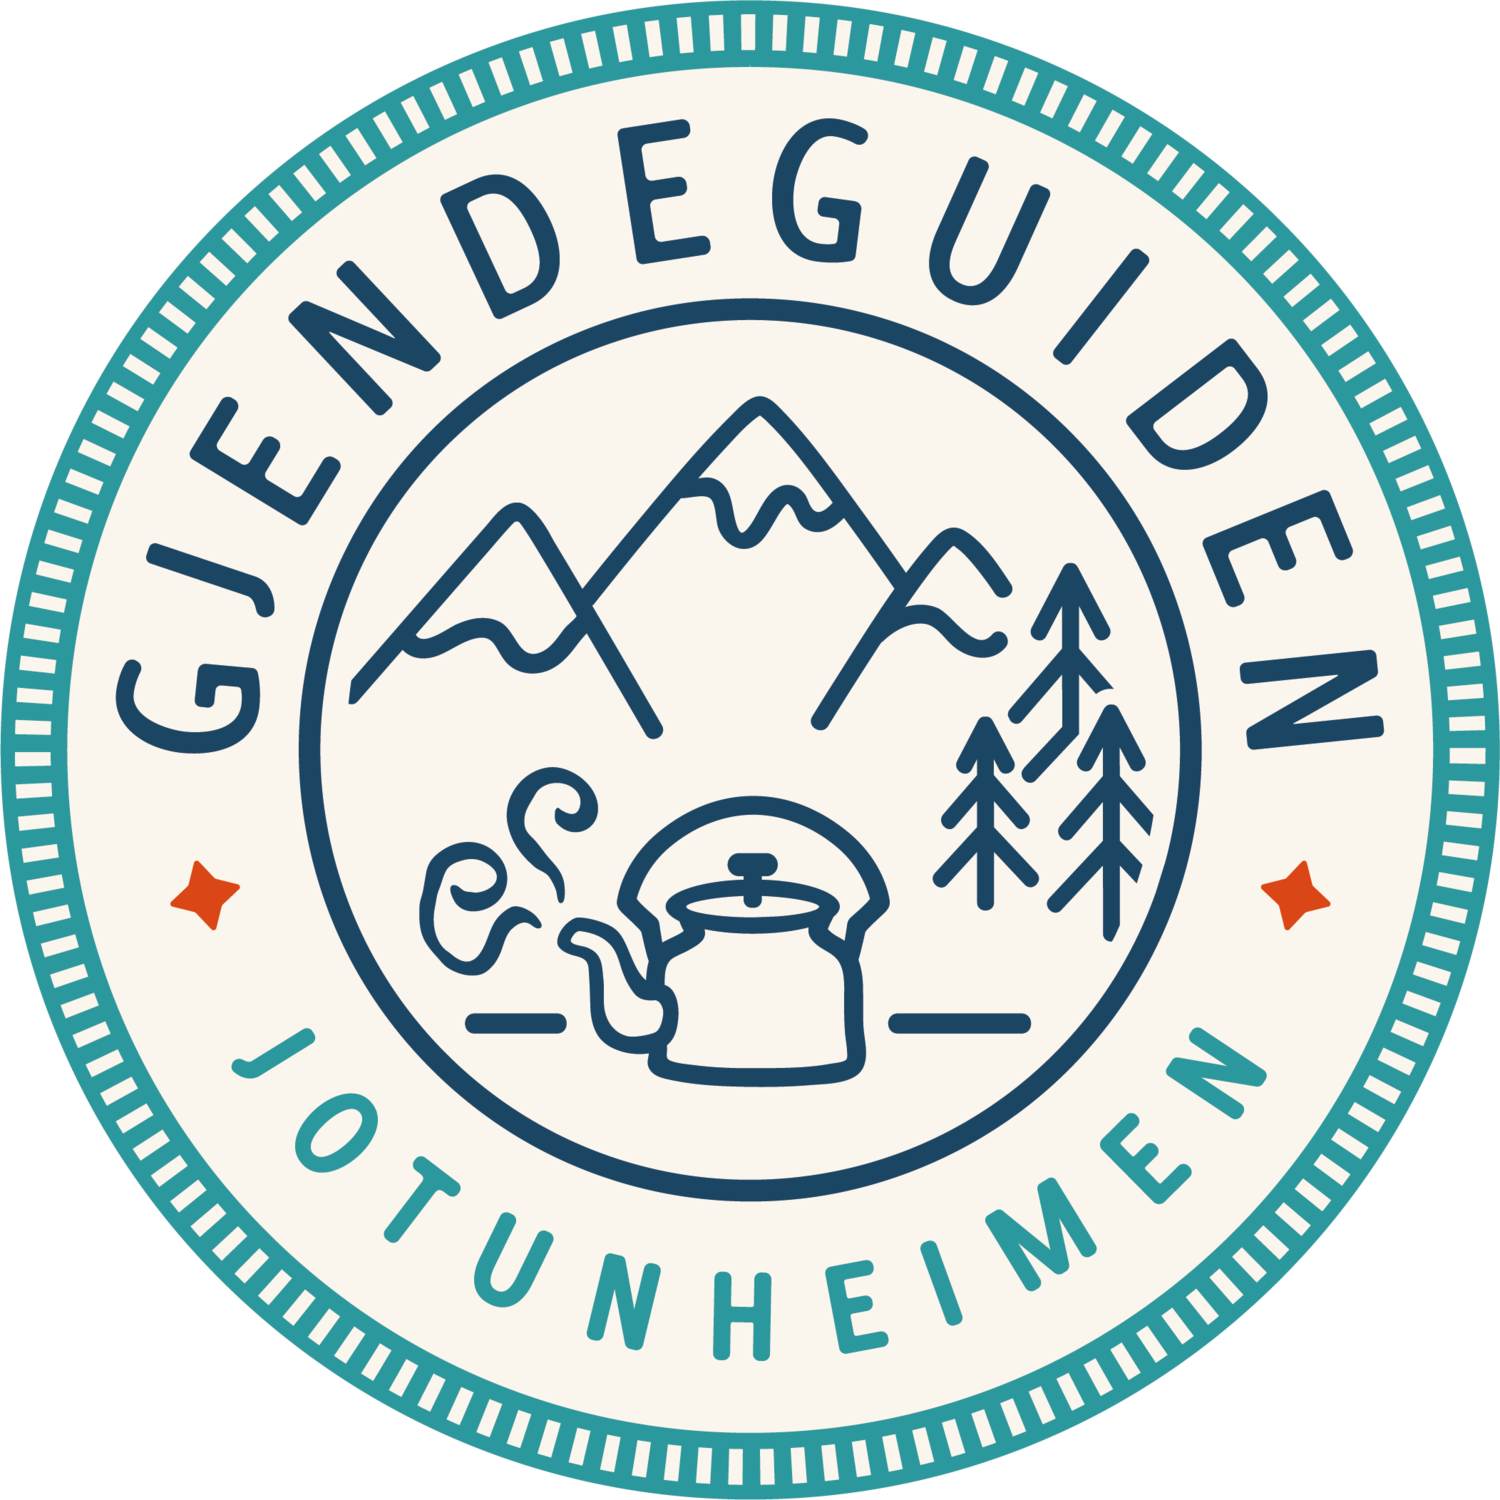 Gjendeguiden. Your guide in Jotunheimen Nationalpark